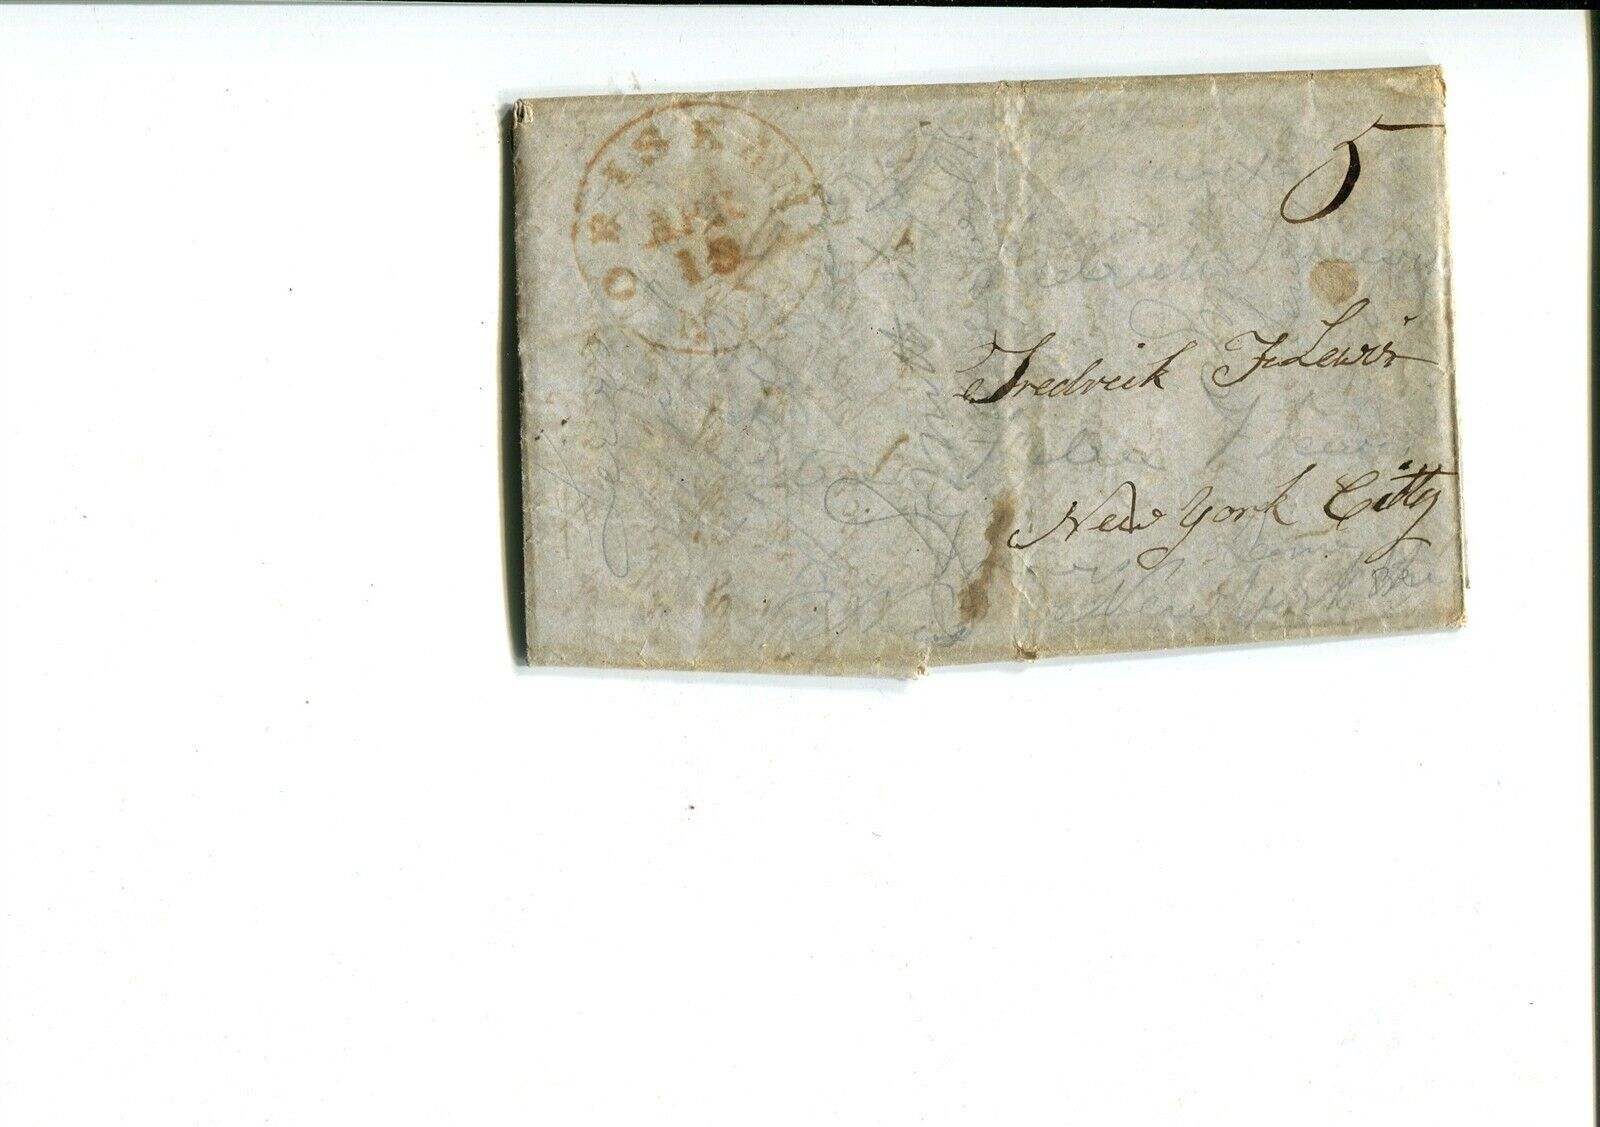 GP GOLDPATH US STAMPLESS COVER 1850,W/LETTER, ORISKANY, NY. CV747 P12 - $5.50